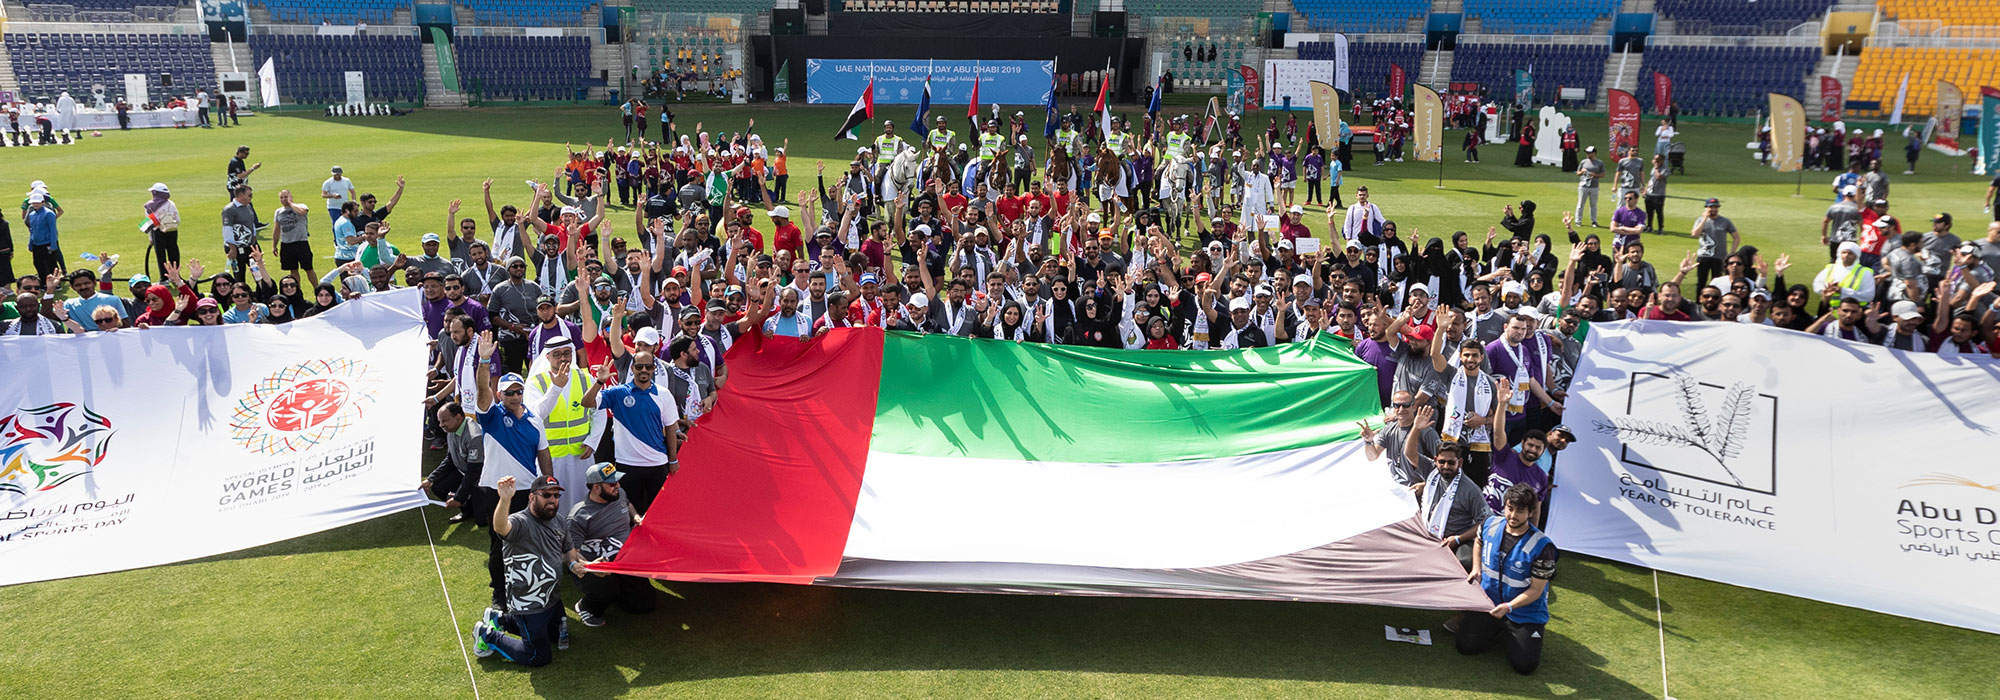 Over 6,000 Community Sports Enthusiasts Descended On Abu Dhabi Cricket For UAE National Sports Day